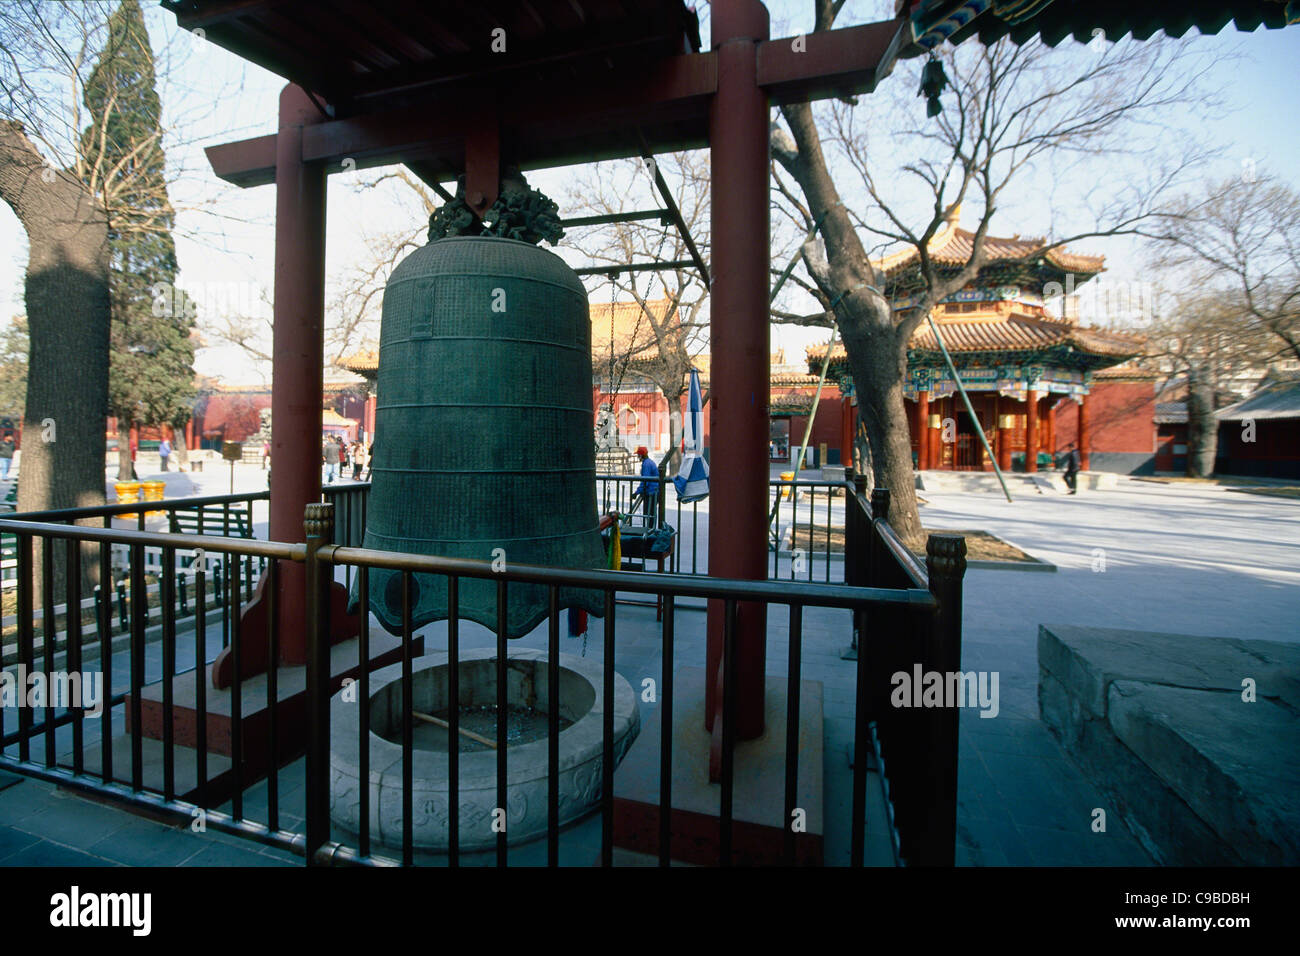 Ceremonial Bell in a Courtyard, Lama Temple, Beijing China - Stock Image